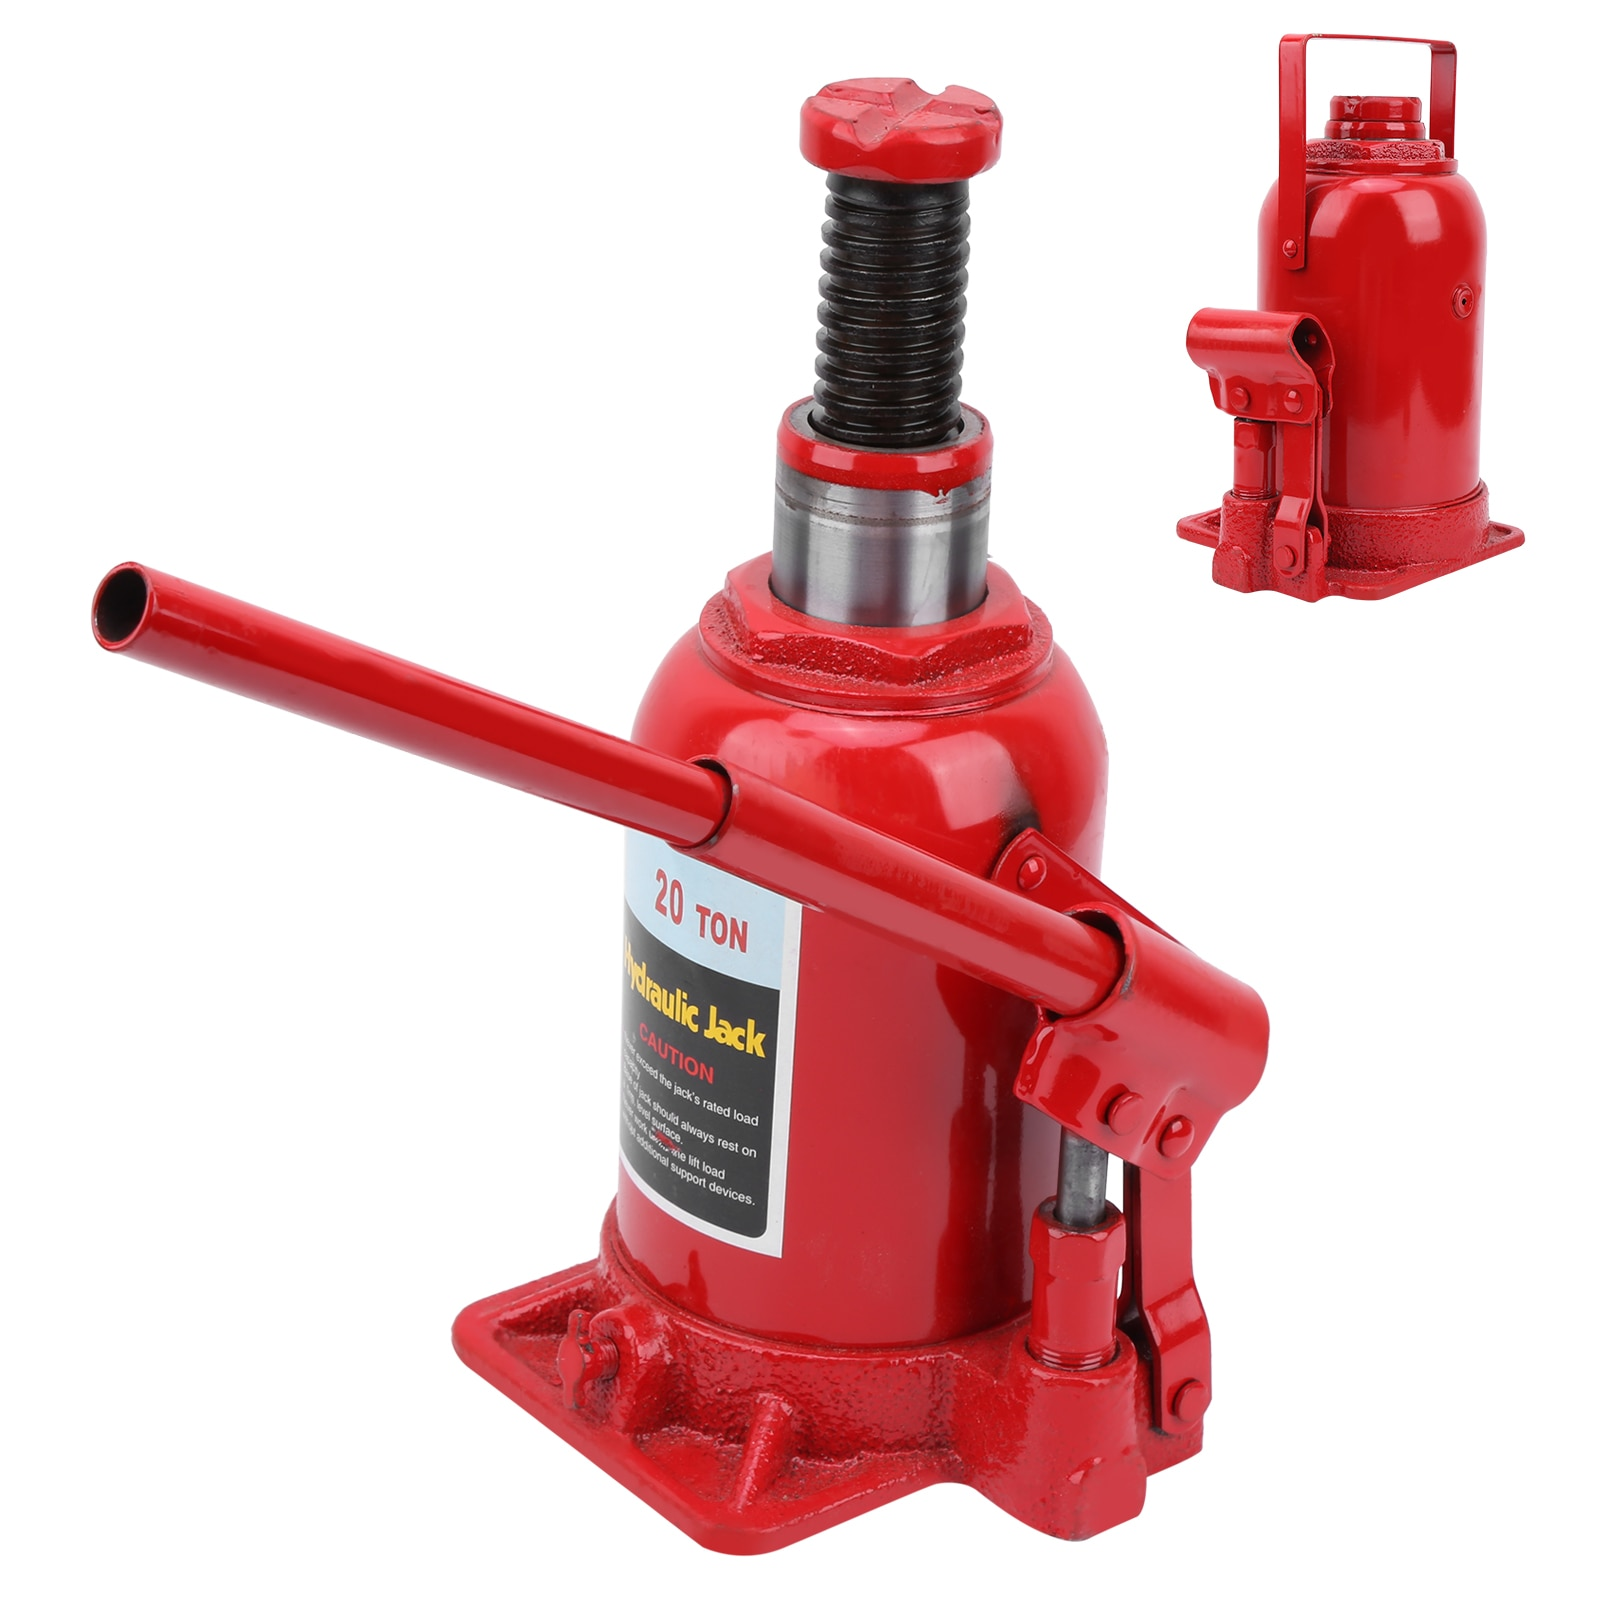 20 Ton Hydraulic Bottle Jacks 0-205mm Lifting Jack for Automotive Construction Industrial Agricultural